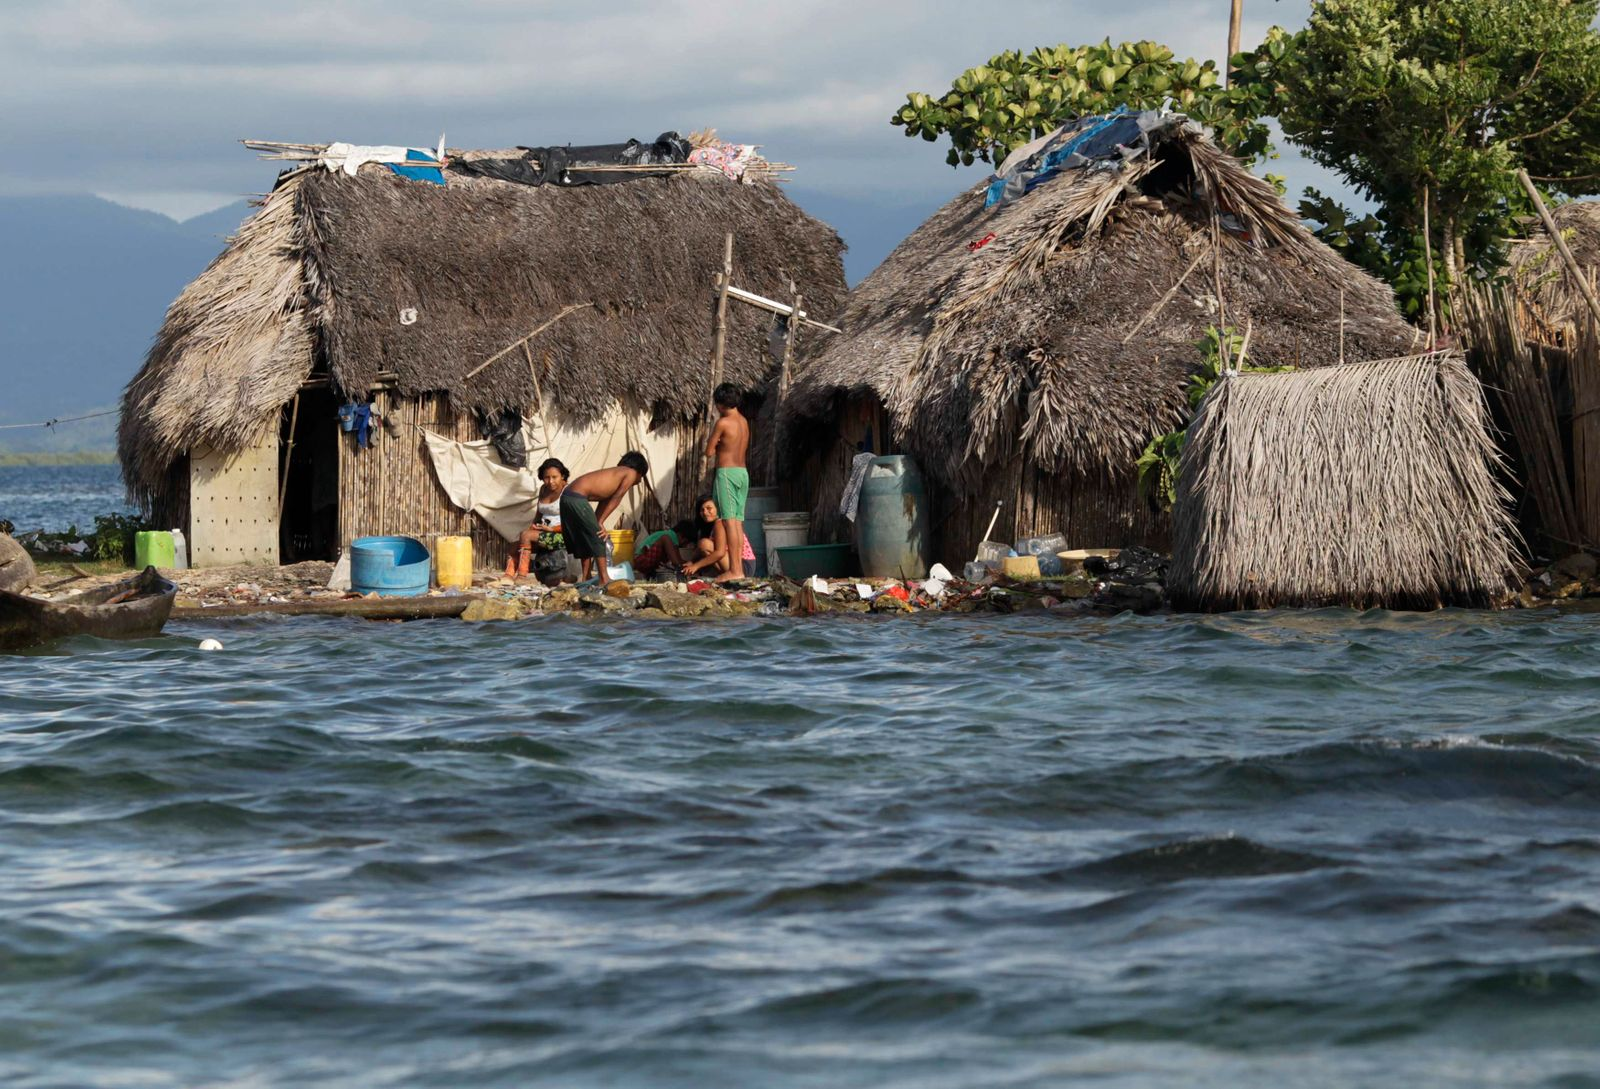 Indigenous Guna residents stand outside a house in Carti Sugdub island at the Comarca of Kuna Yala